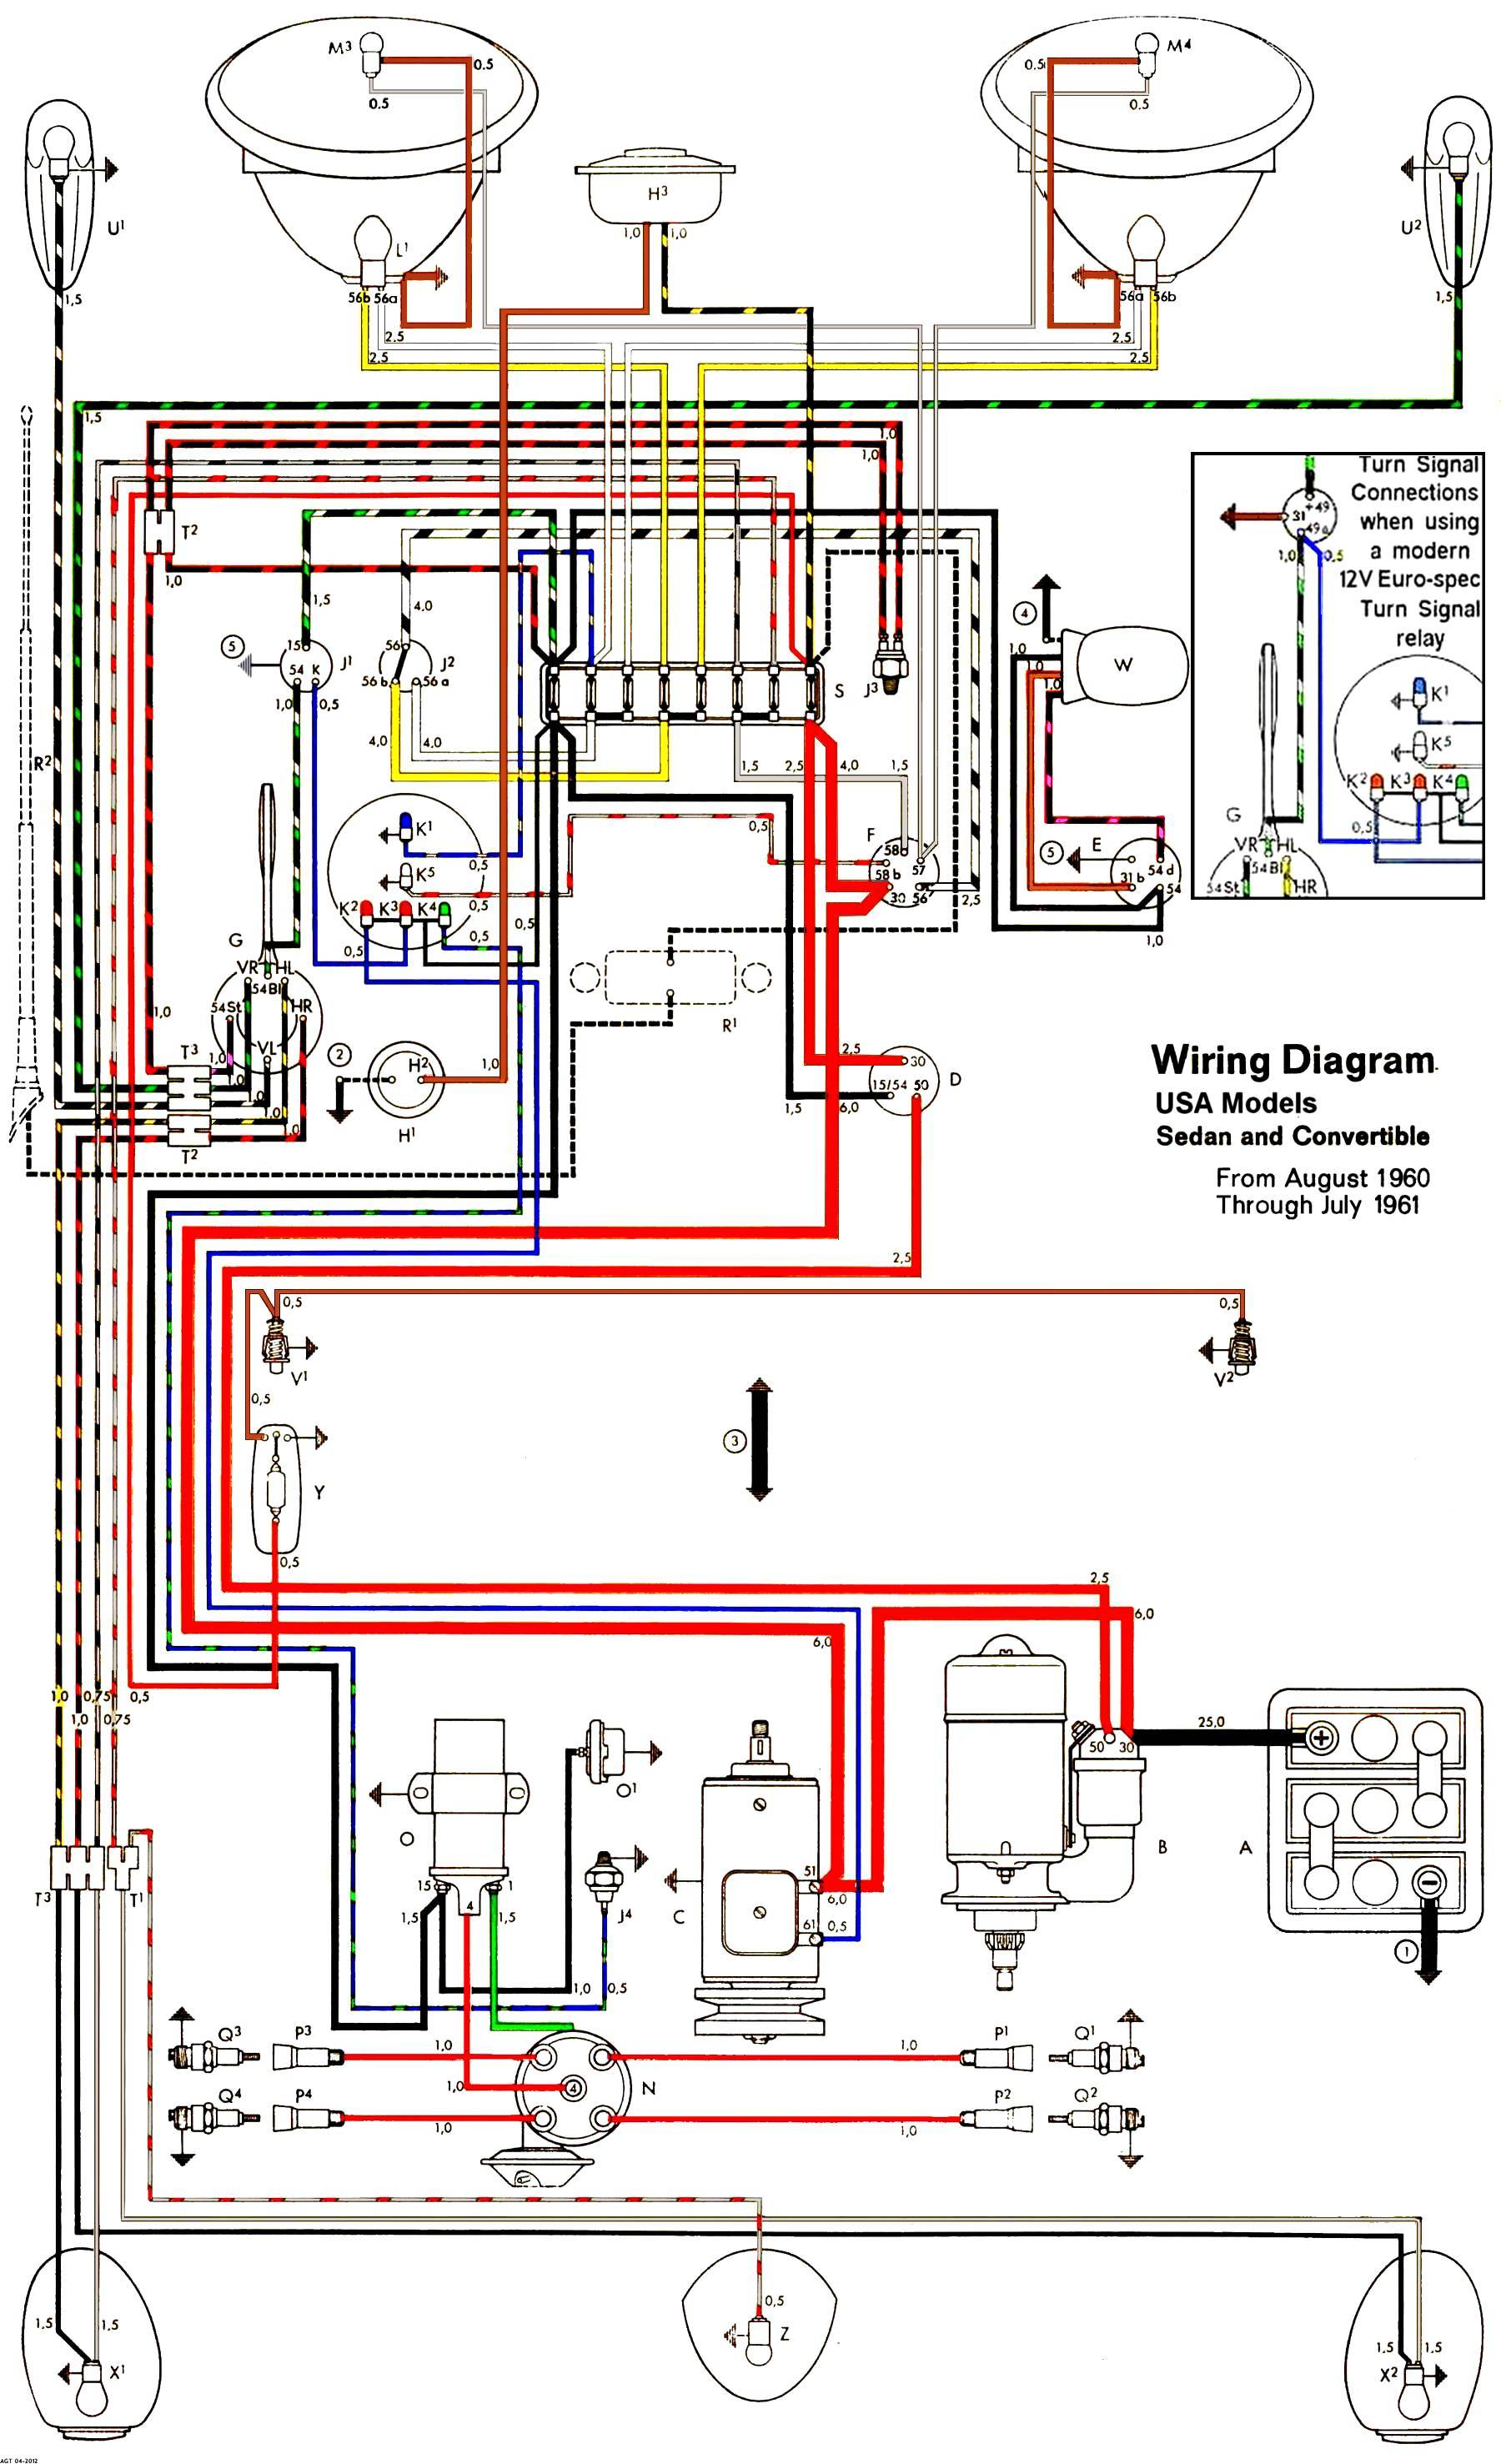 1961USA T1 thesamba com type 1 wiring diagrams 1965 vw beetle wiring diagram at mifinder.co